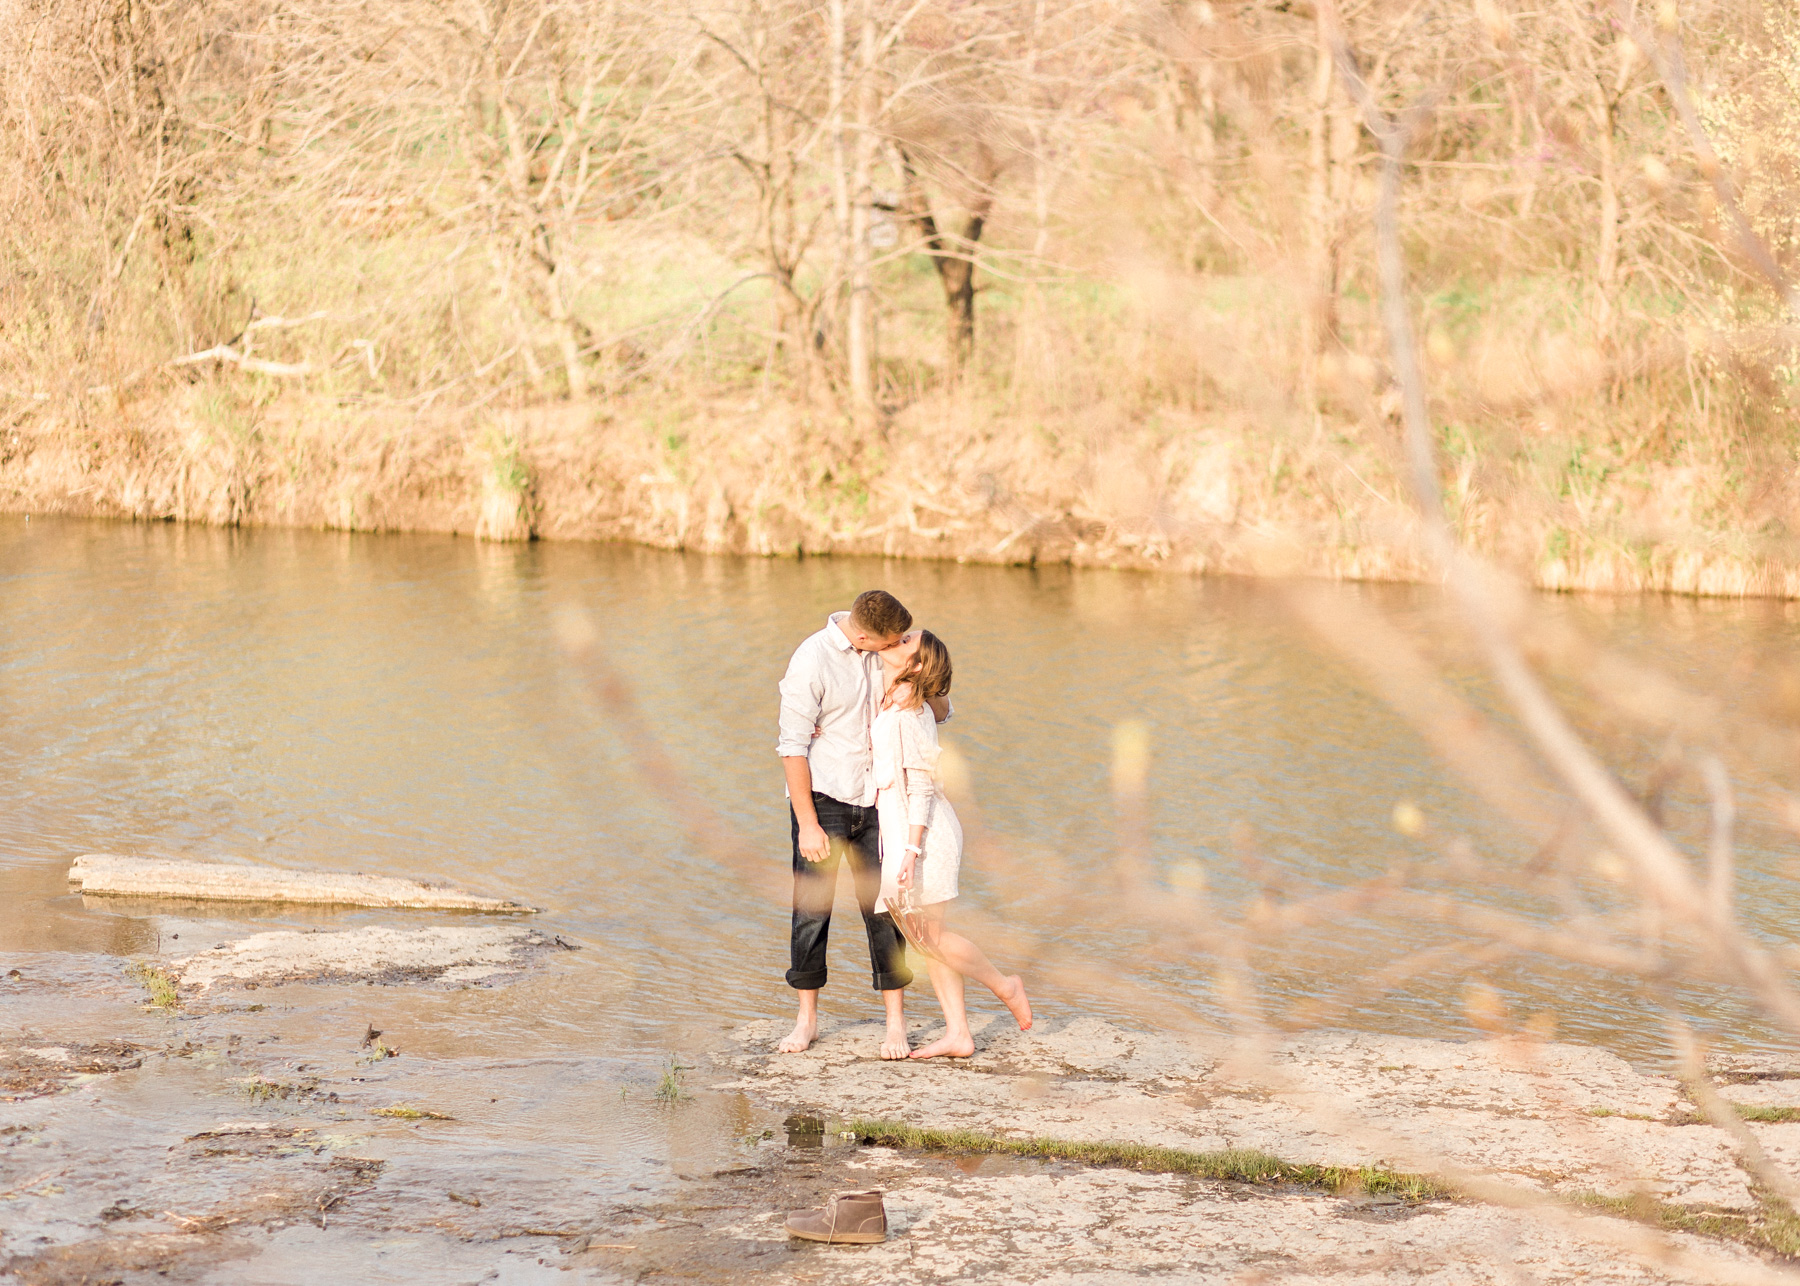 abby and zach kissing near water